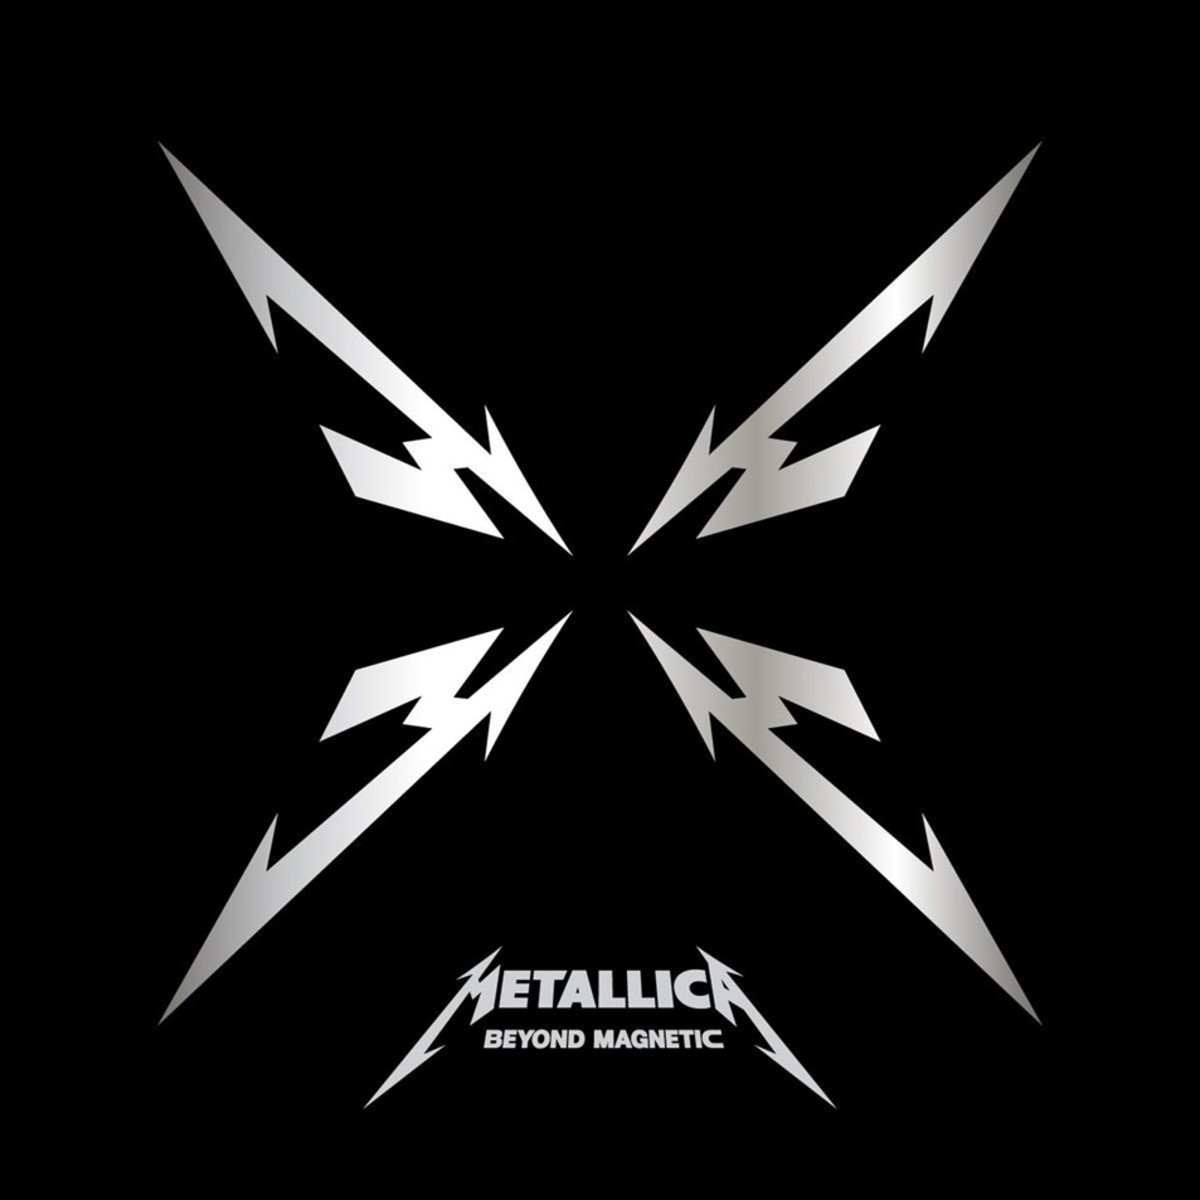 Metallica Beyond Magnetic: A Forgotten Mini Album by One of the Greatest Heavy Metal Bands